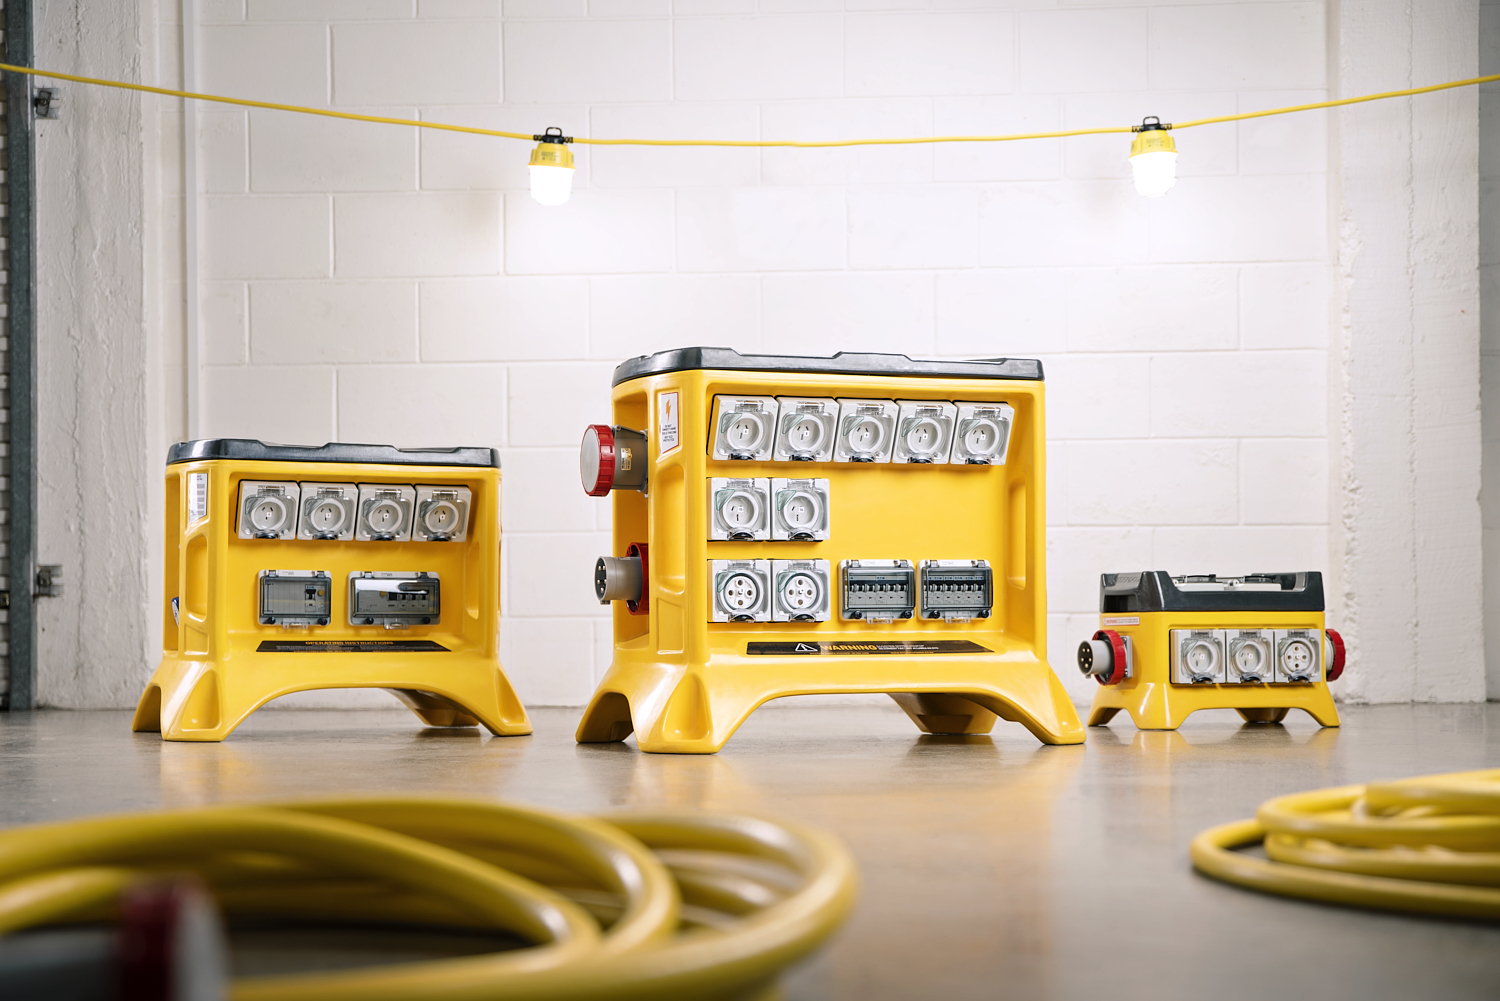 Power Distribution Units range with cables and worklights